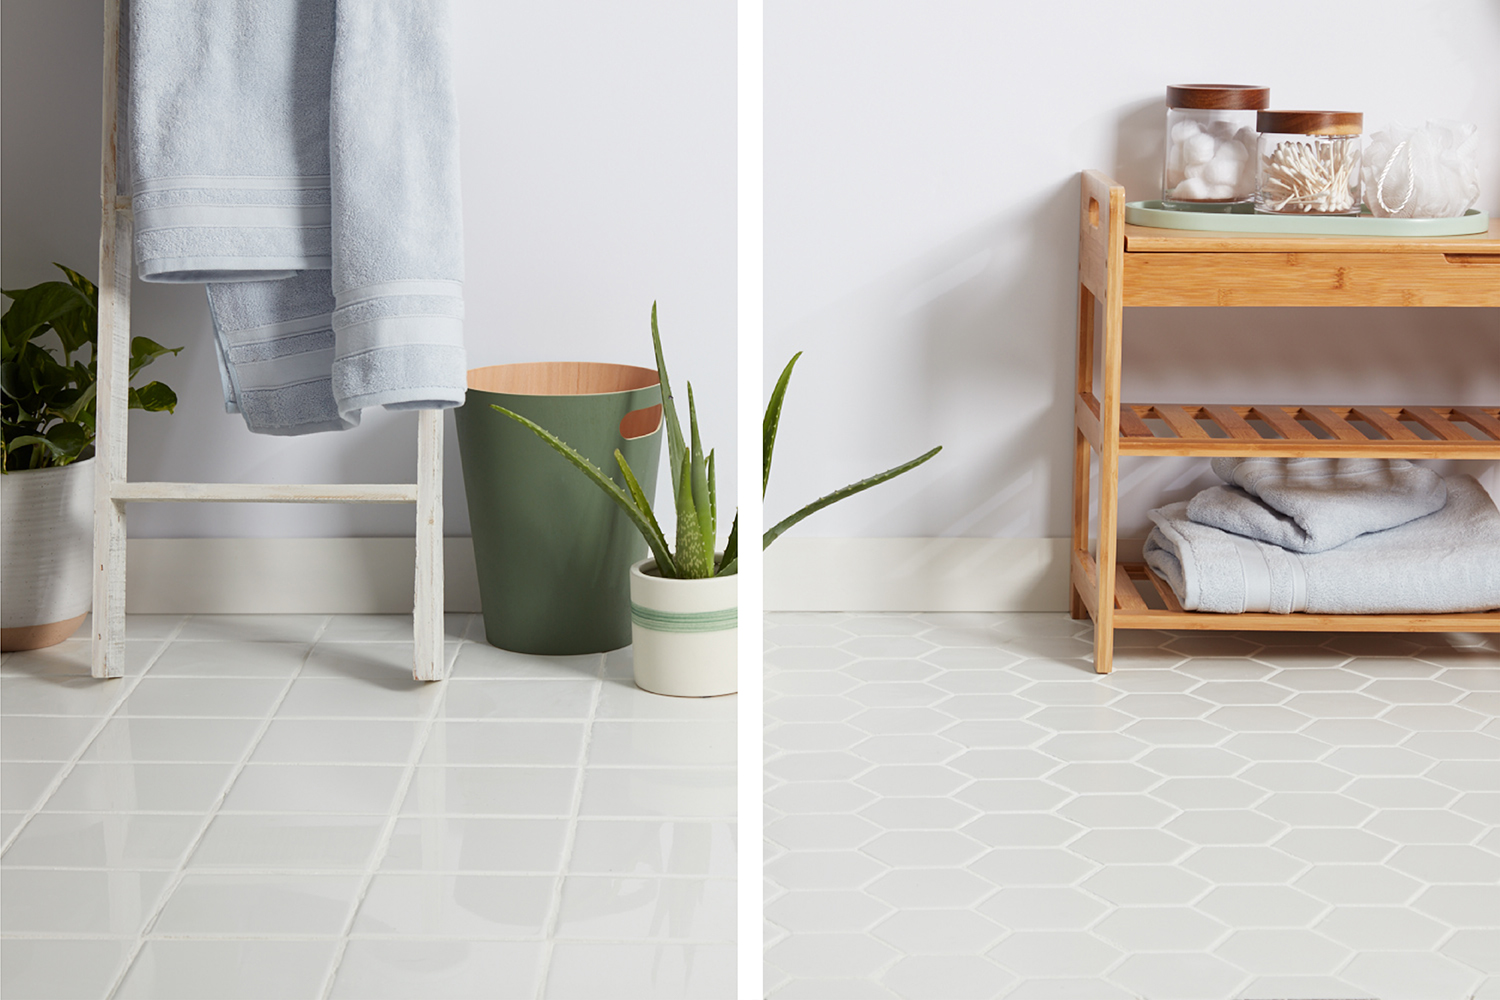 porcelain-tile-vs-ceramic-tile-1822583_hero